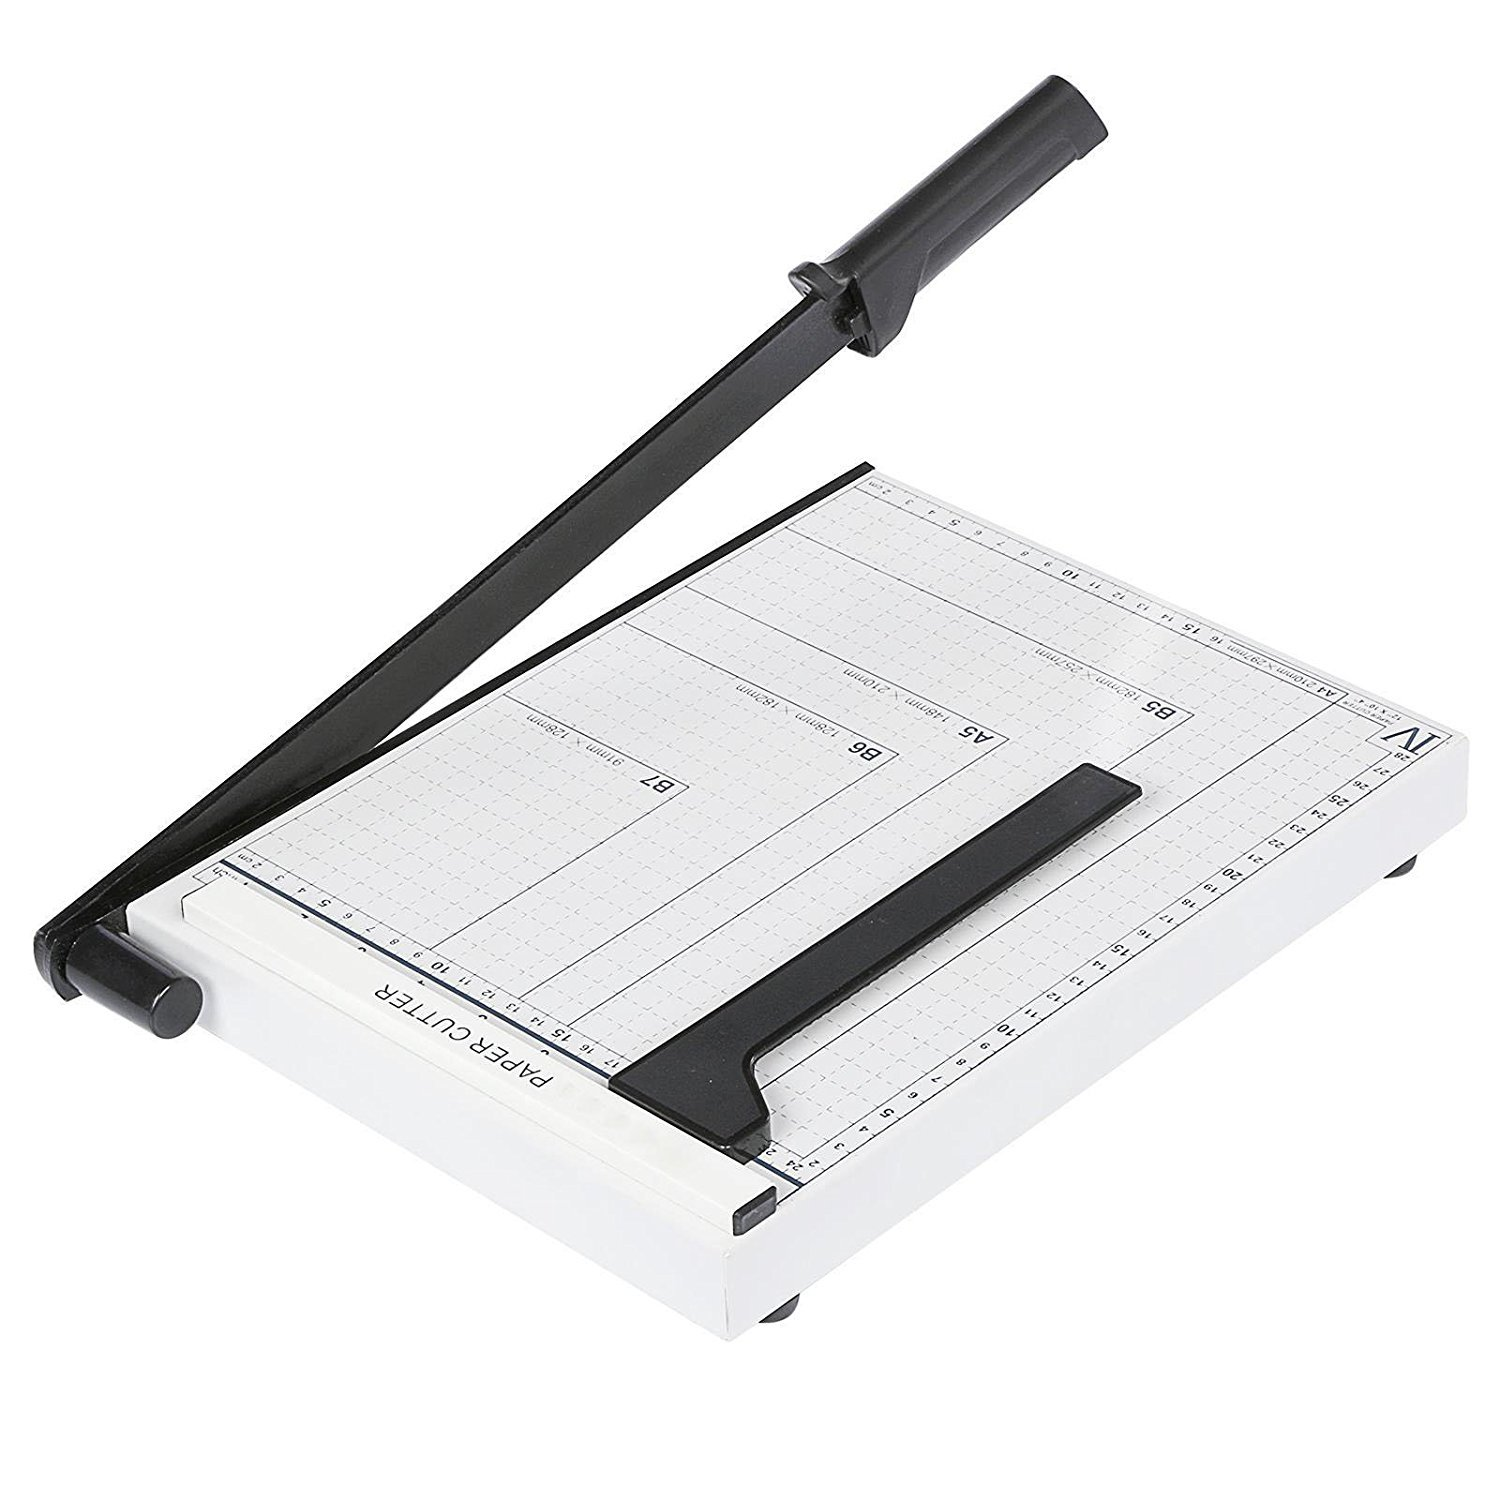 Heavy Duty Professional Paper Trimmer 12'' Steel and Plastic A4 Paper Desk Cutting Tool Photo Paper Cutter Machine Office / Home